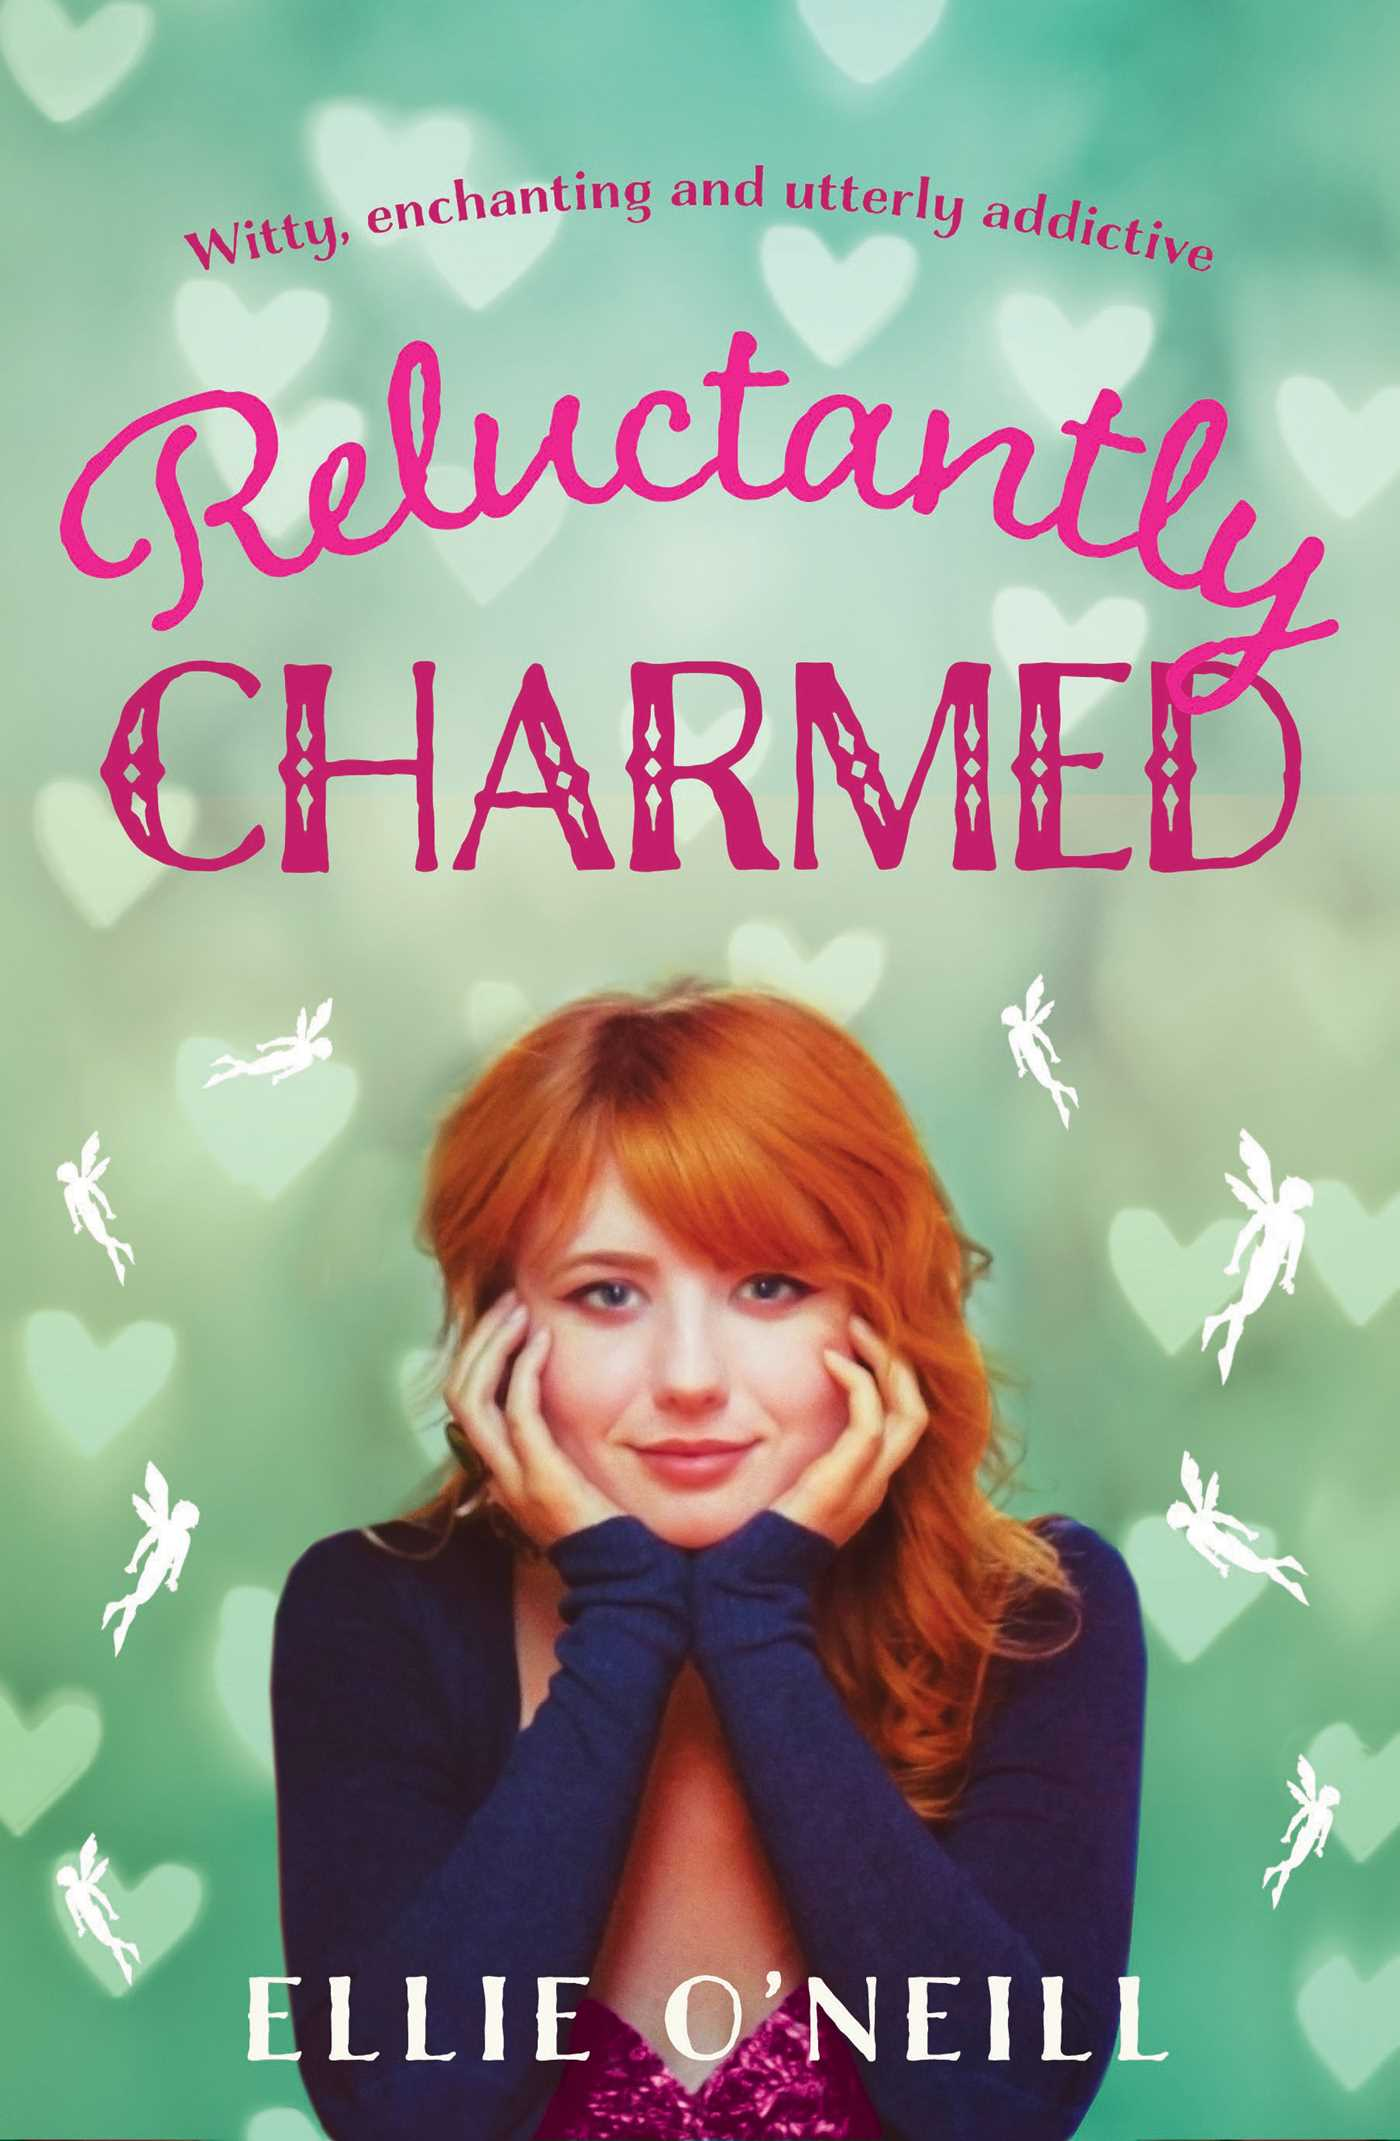 Reluctantly-charmed-9781922052773_hr